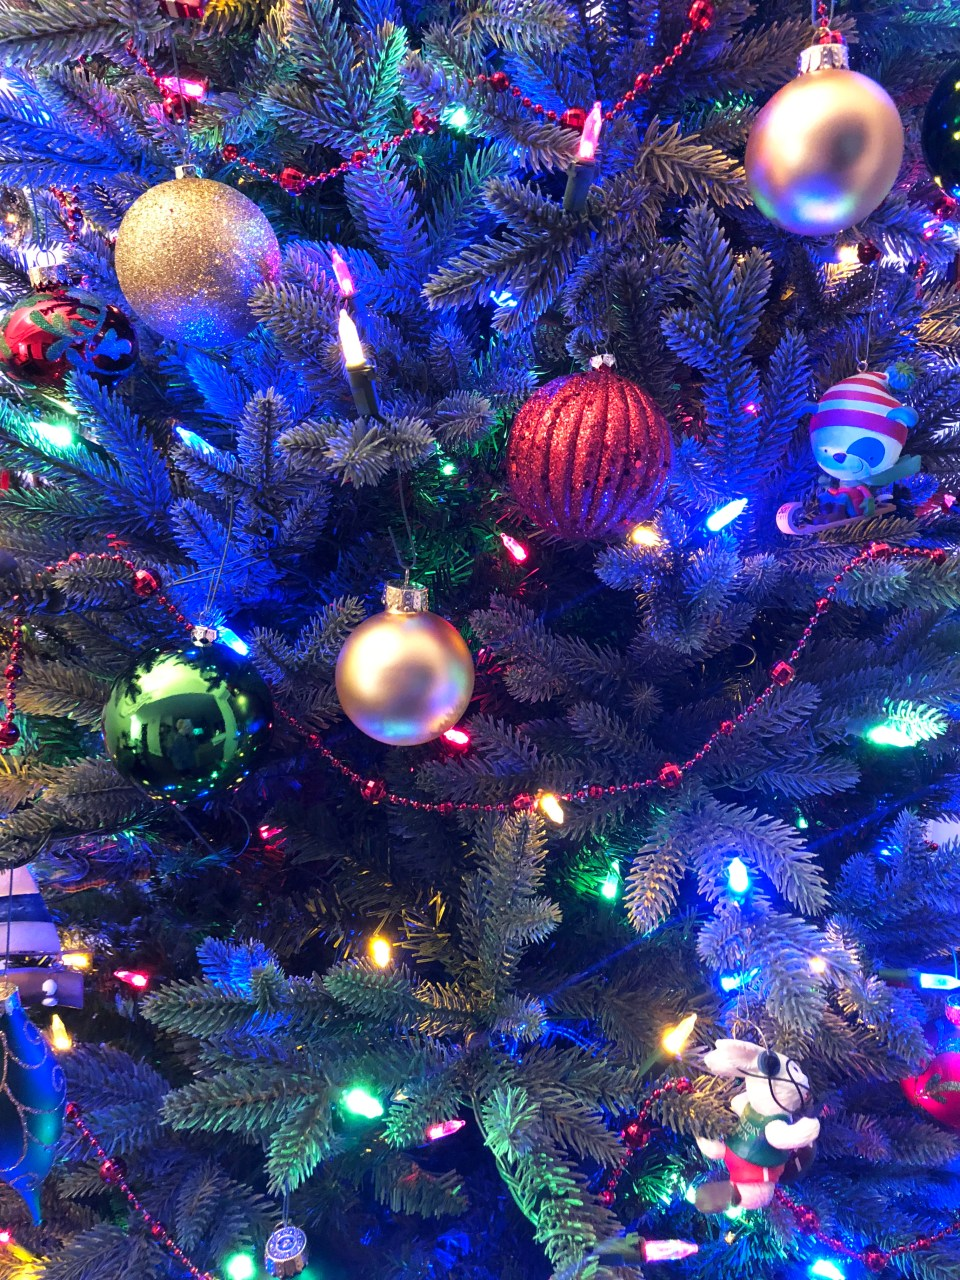 Christmas Tree - Nighttime 8